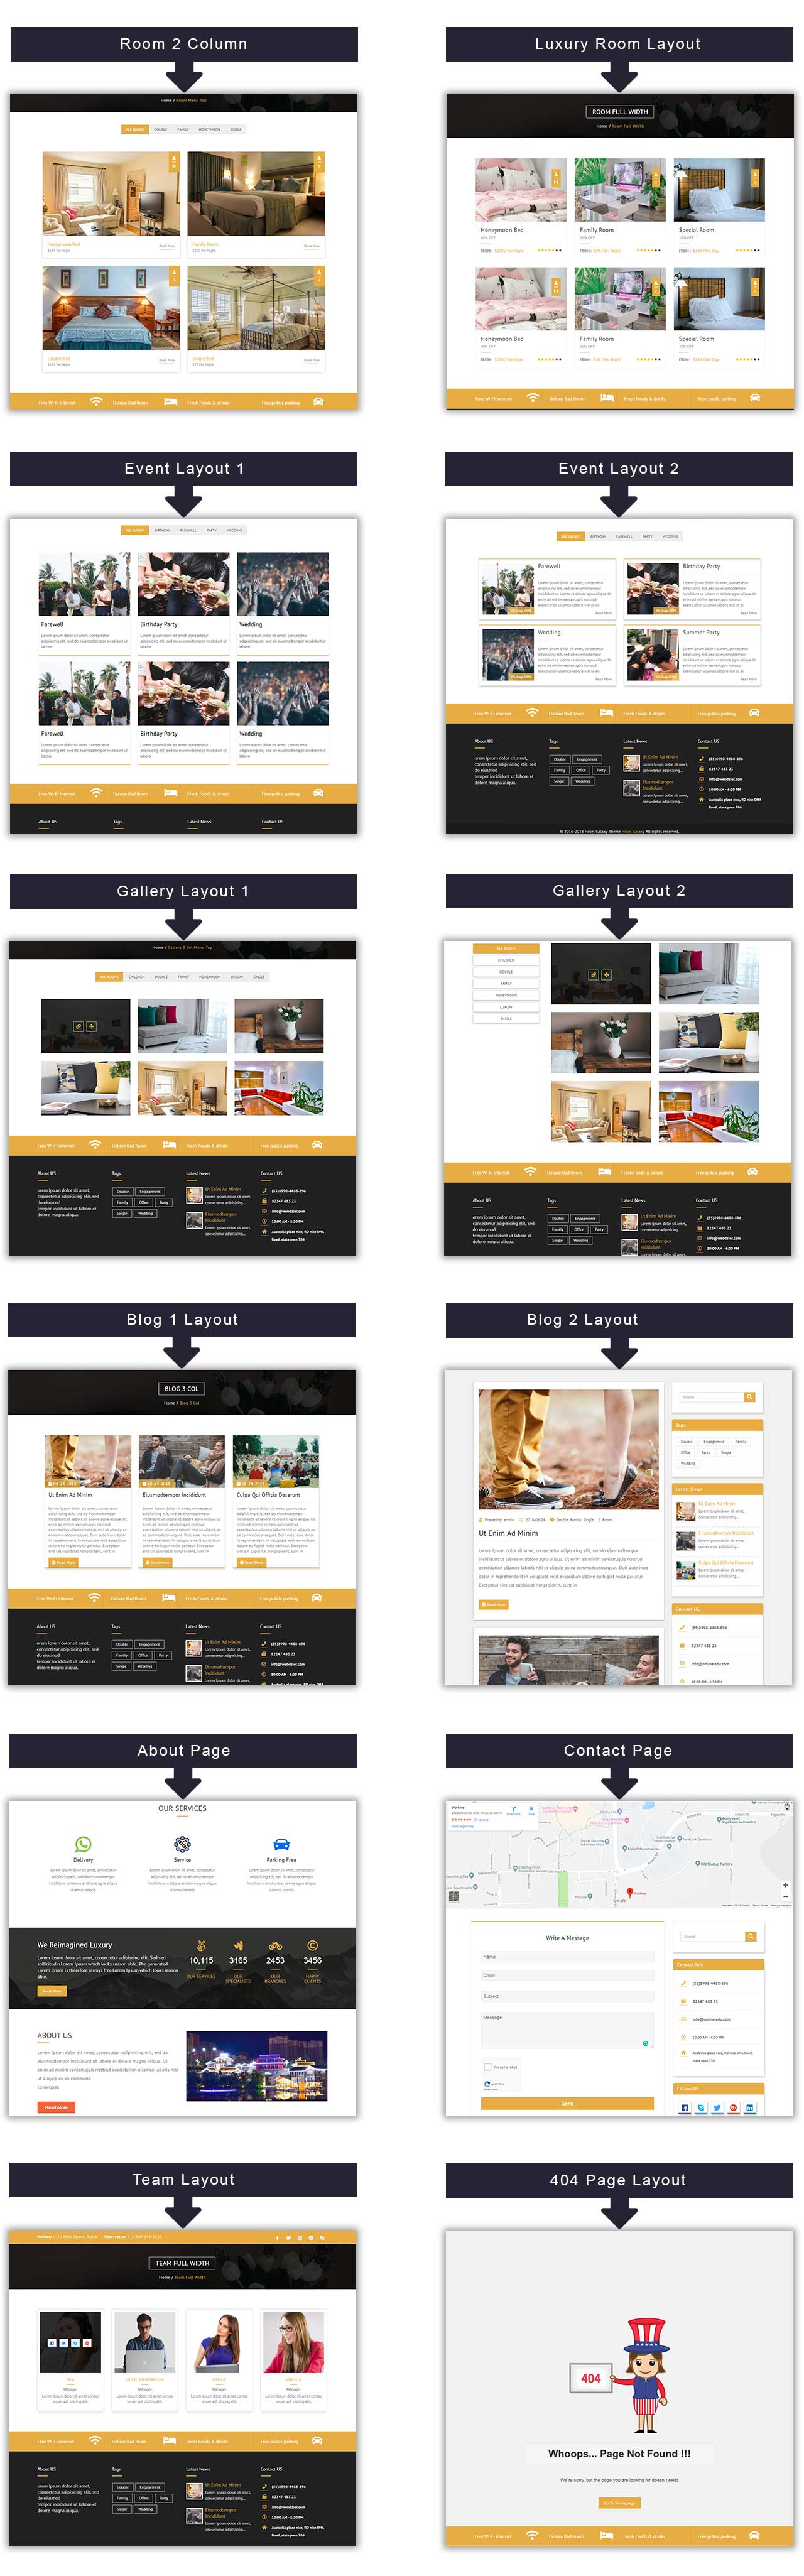 Premium WordPress themes for your website Hotel Galaxy Pro web hotel galaxy pages details   Premium Themes WordPress Themes